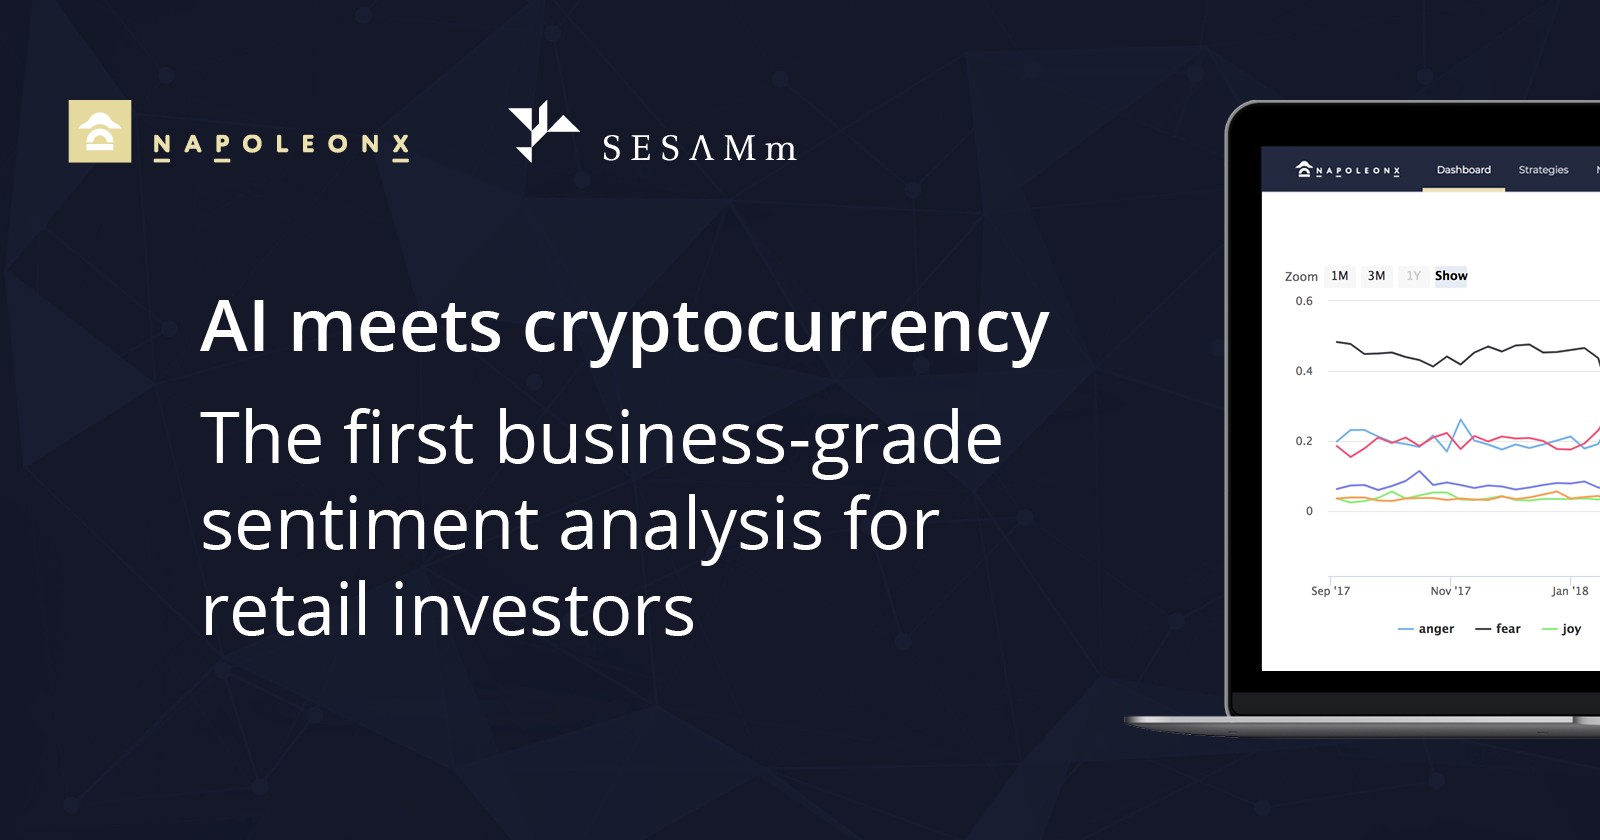 AI meets cryptocurrency: the first business-grade sentiment